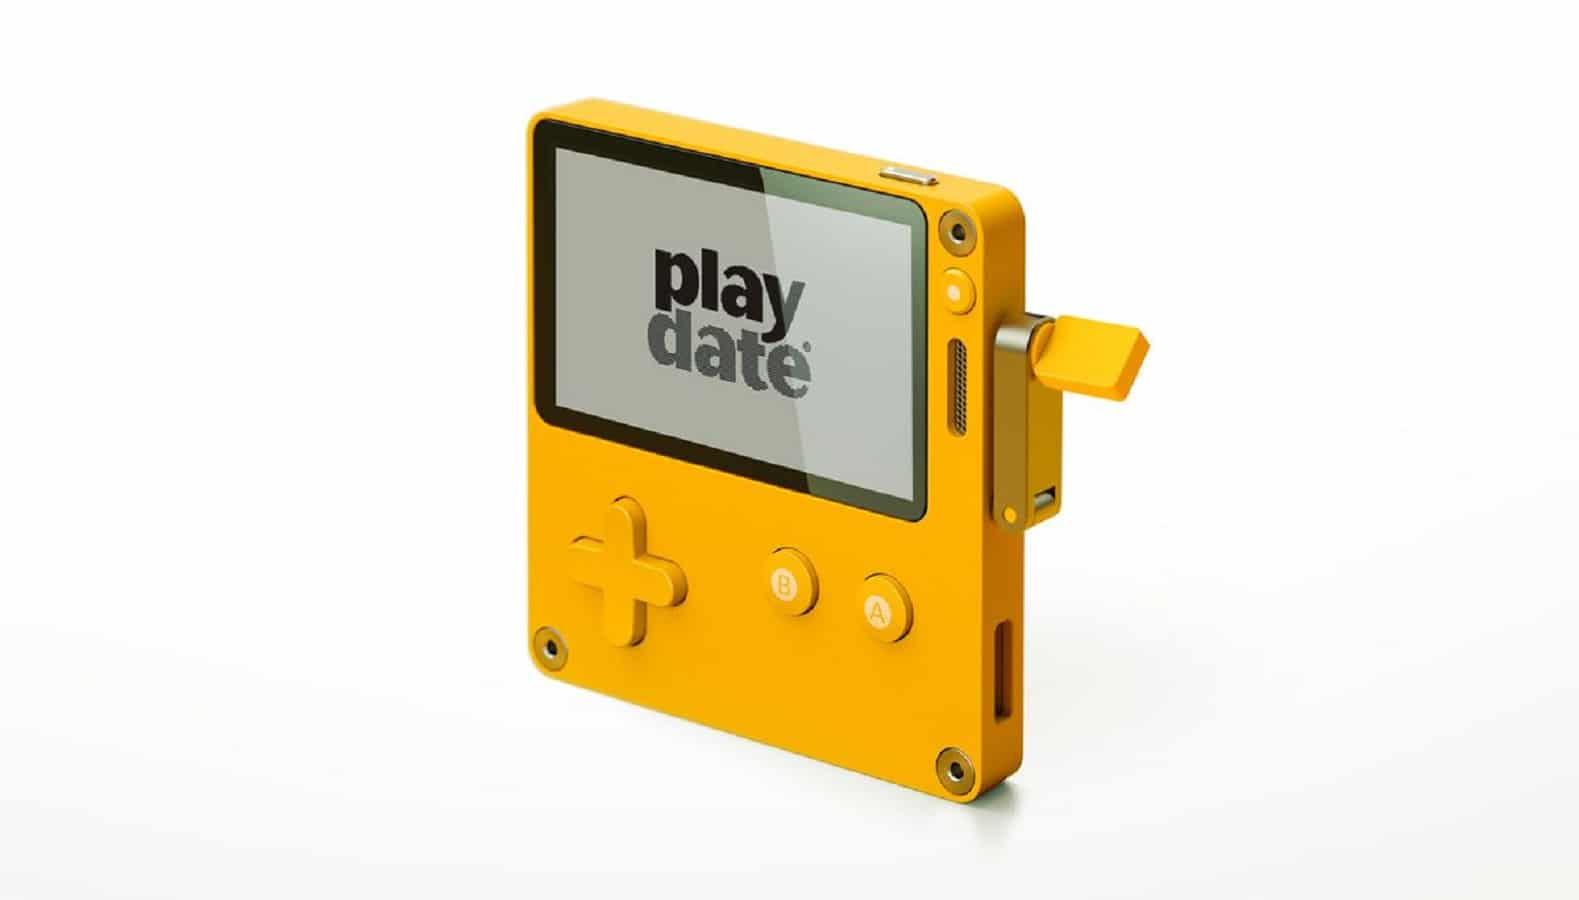 playdate console on white background